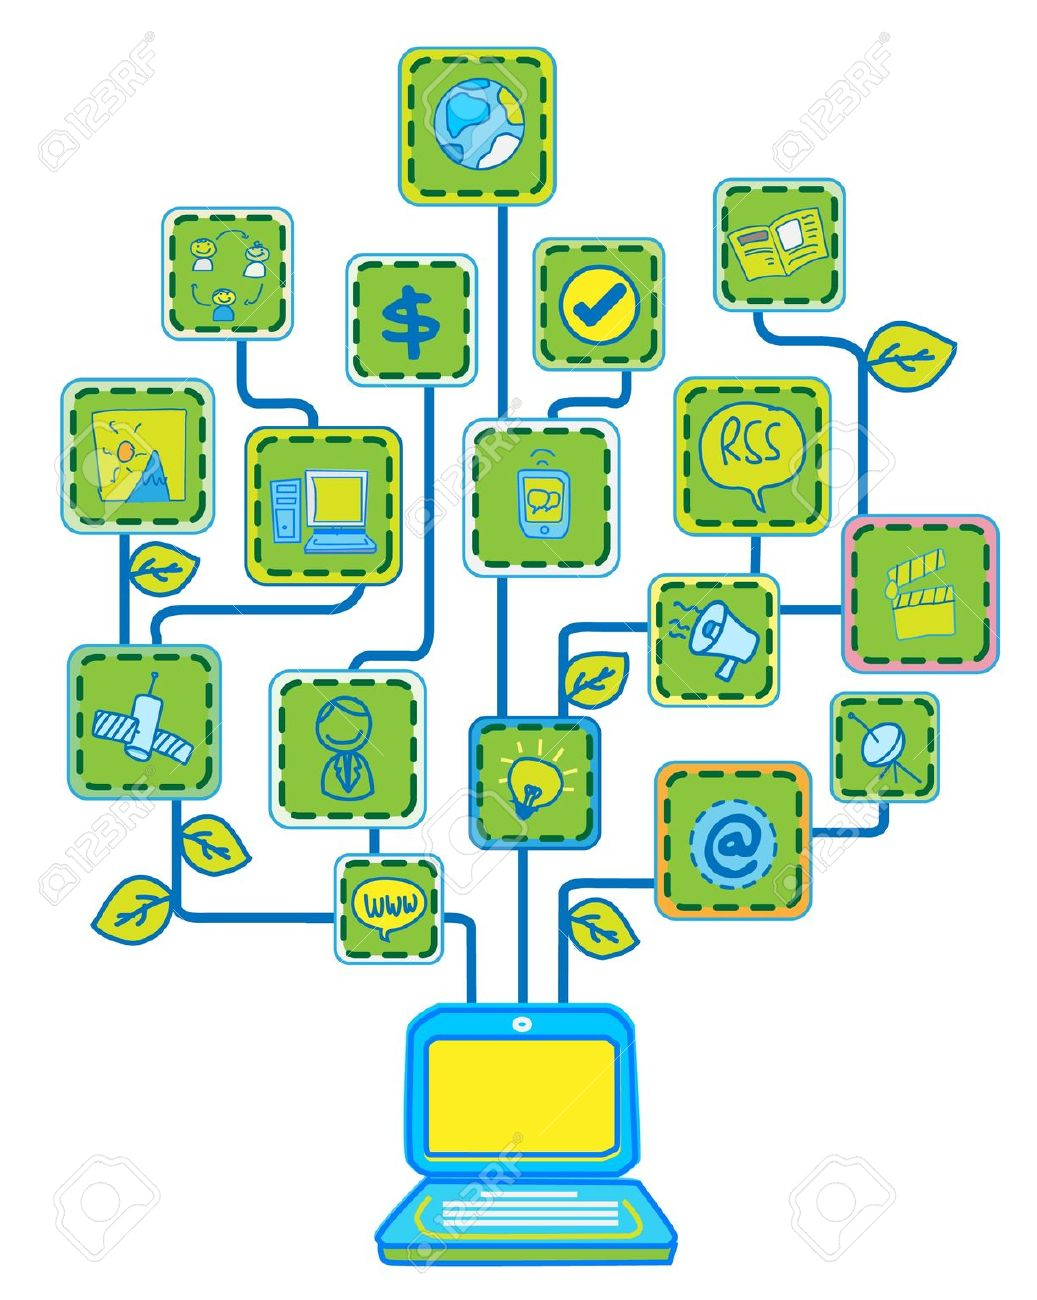 Tree with technology clipart image royalty free stock Tree with technology clipart - ClipartFox image royalty free stock